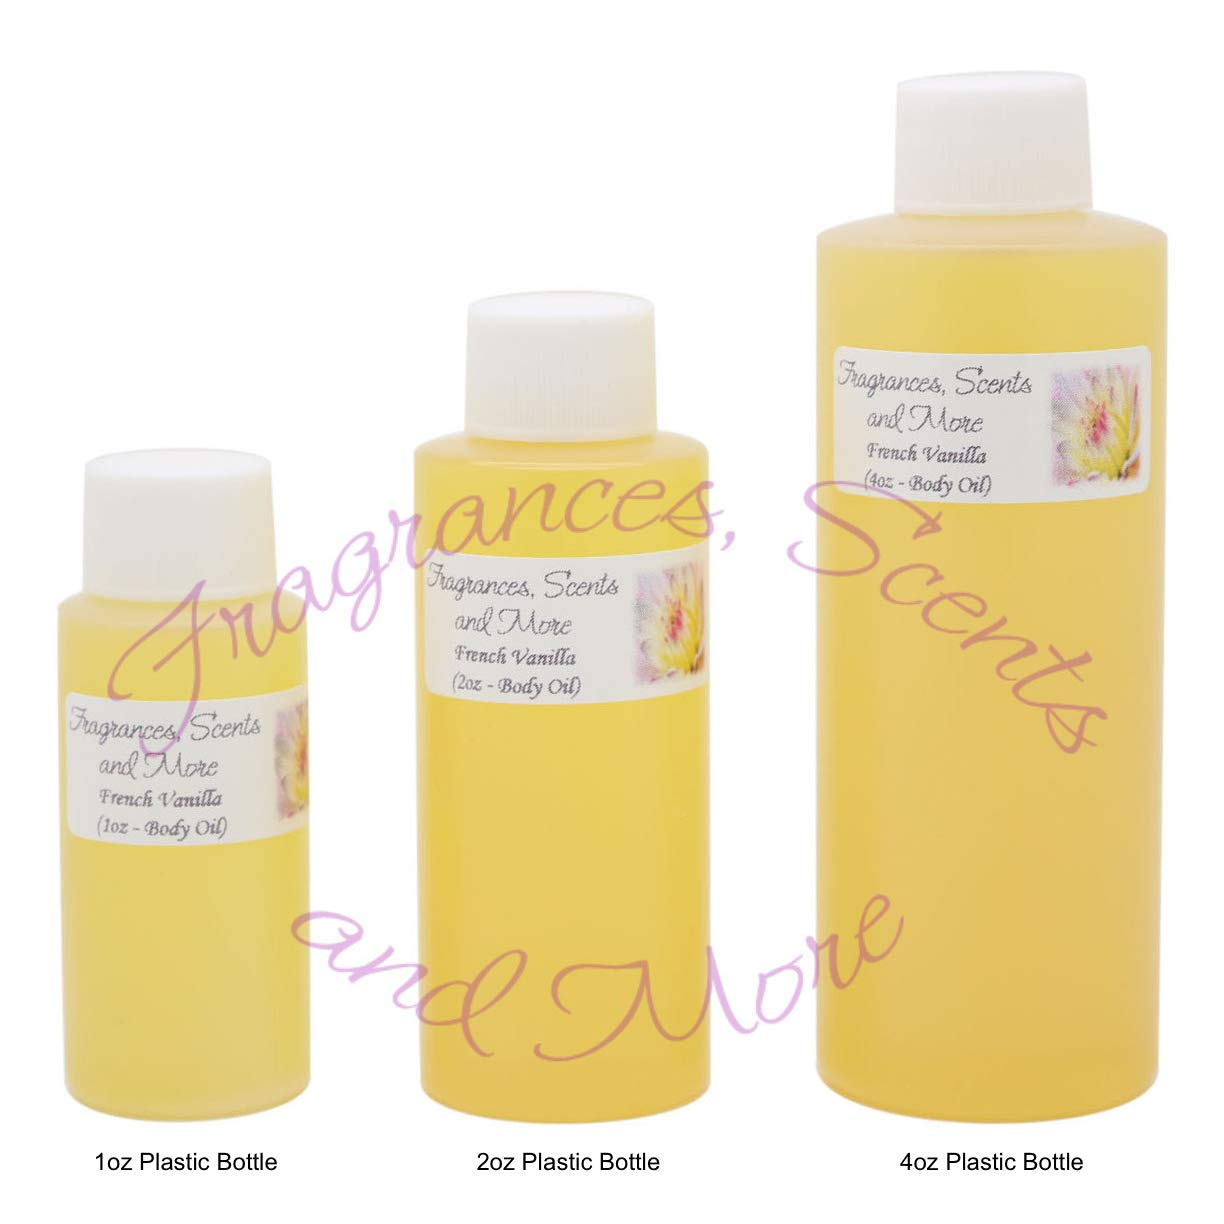 French Vanilla Perfume/Body Oil (7 Sizes) - Free Shipping (16oz Plastic Bottle (480ml))